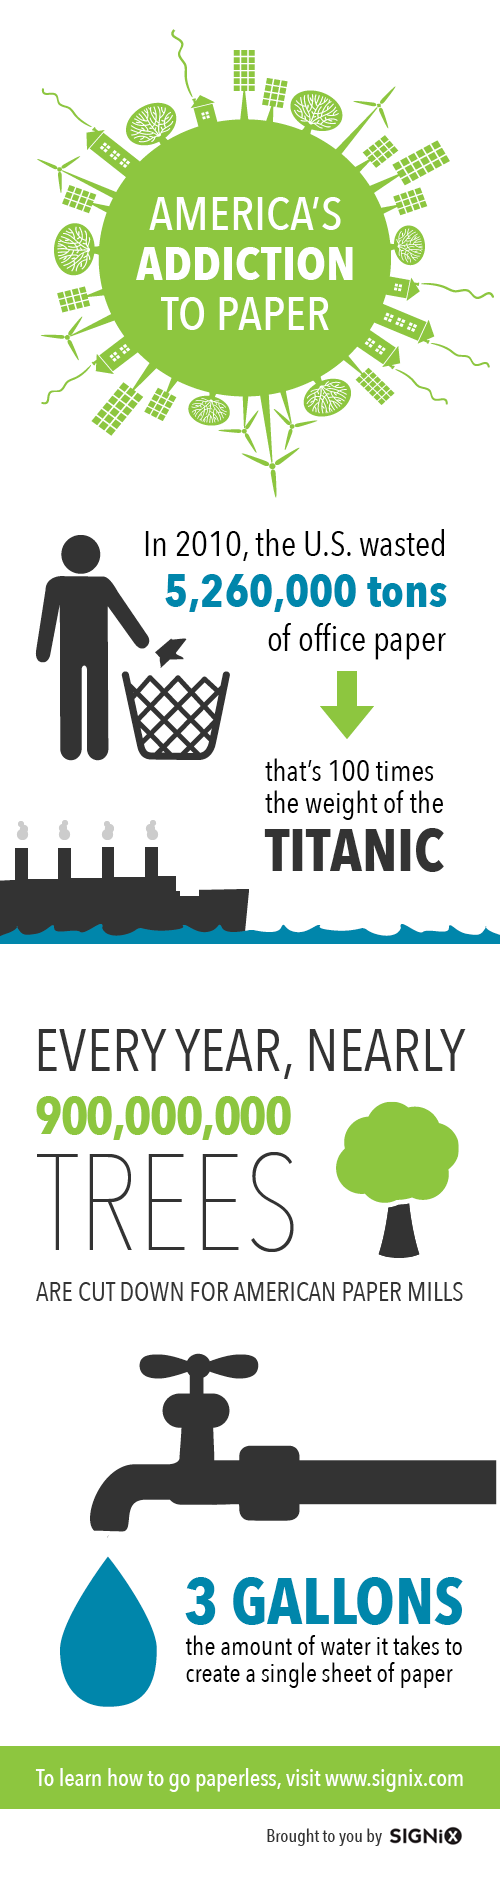 Earth Day Infographic: America's Addiction to Paper